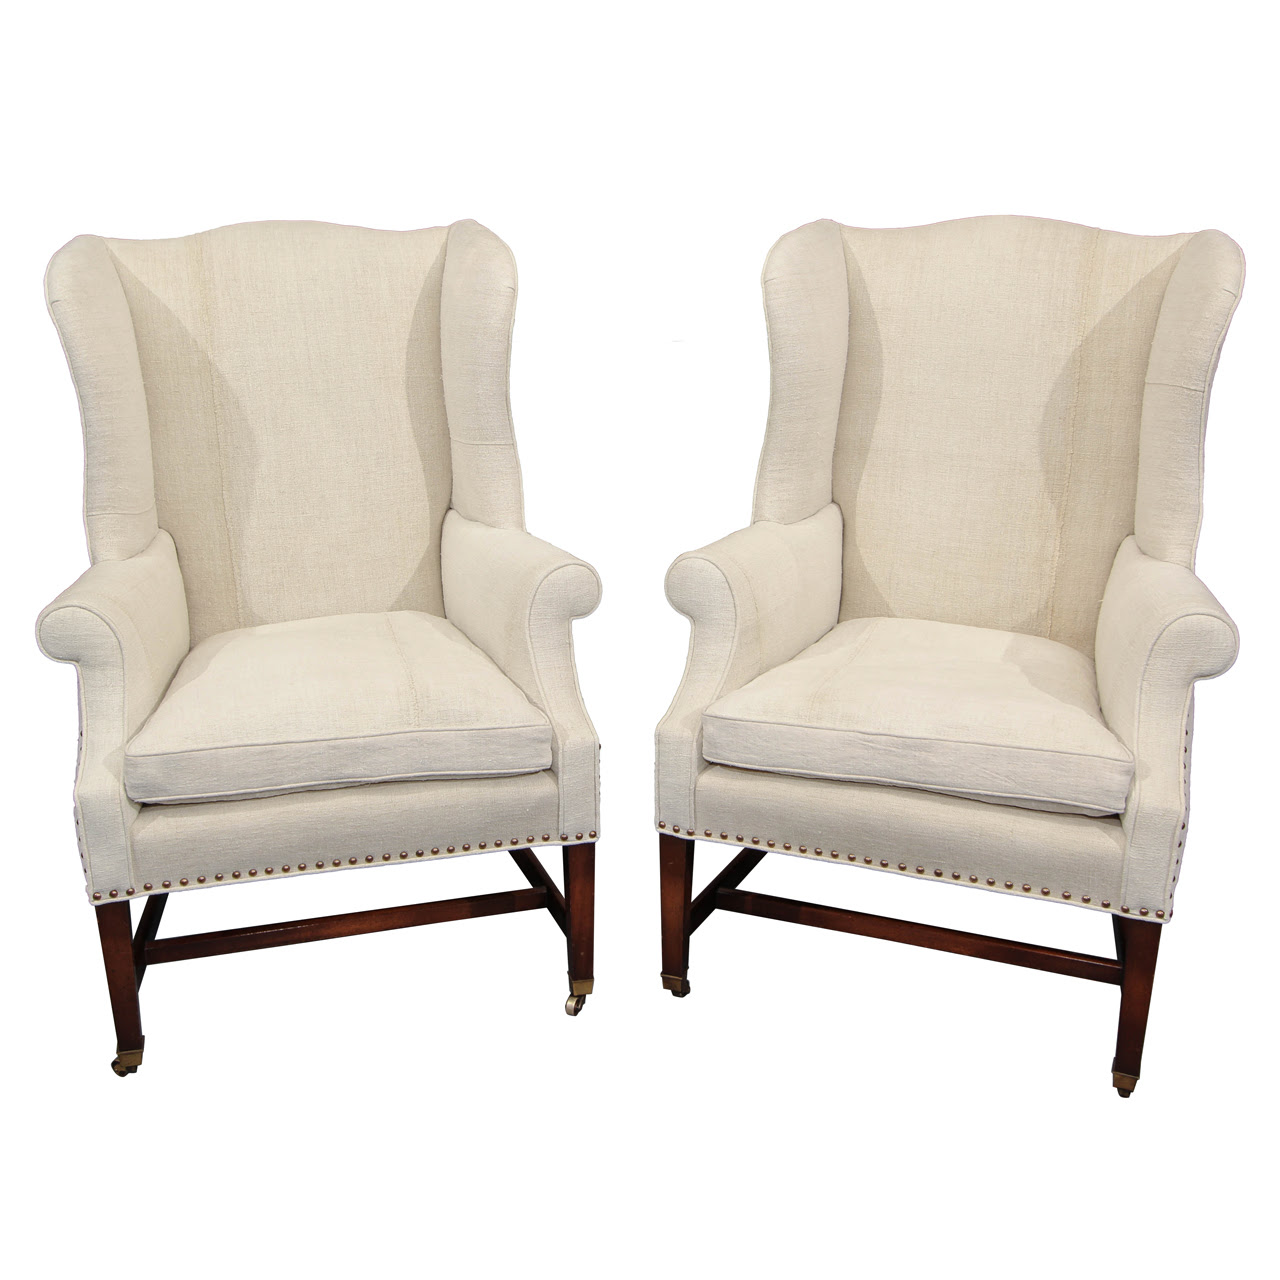 Double White Upholstered Wingback Chairs